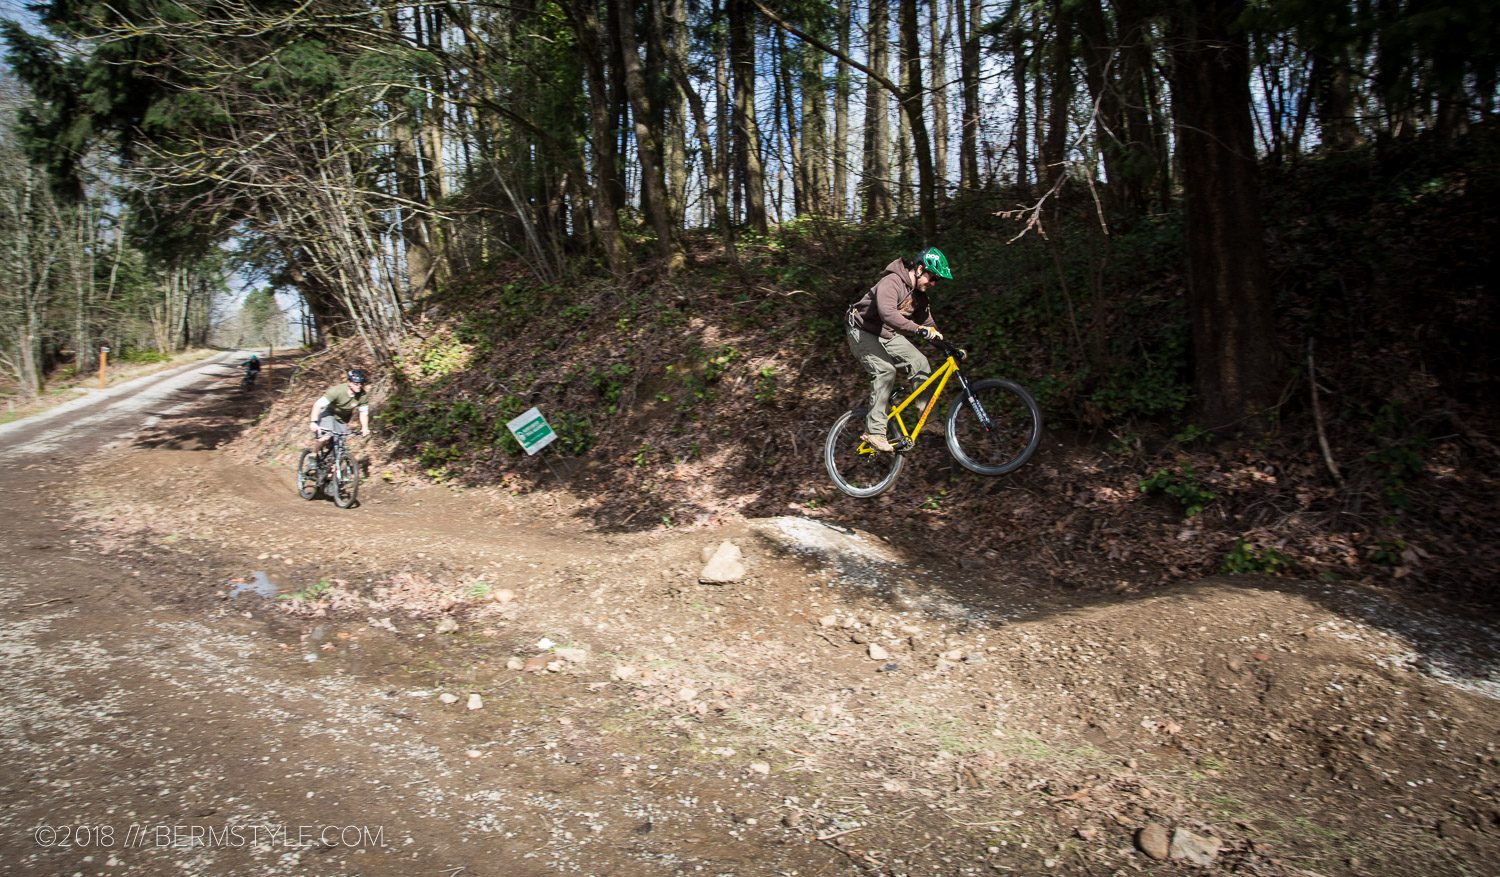 Gateway Green DirtLab Evolution: Toe Line Pump Track Trail